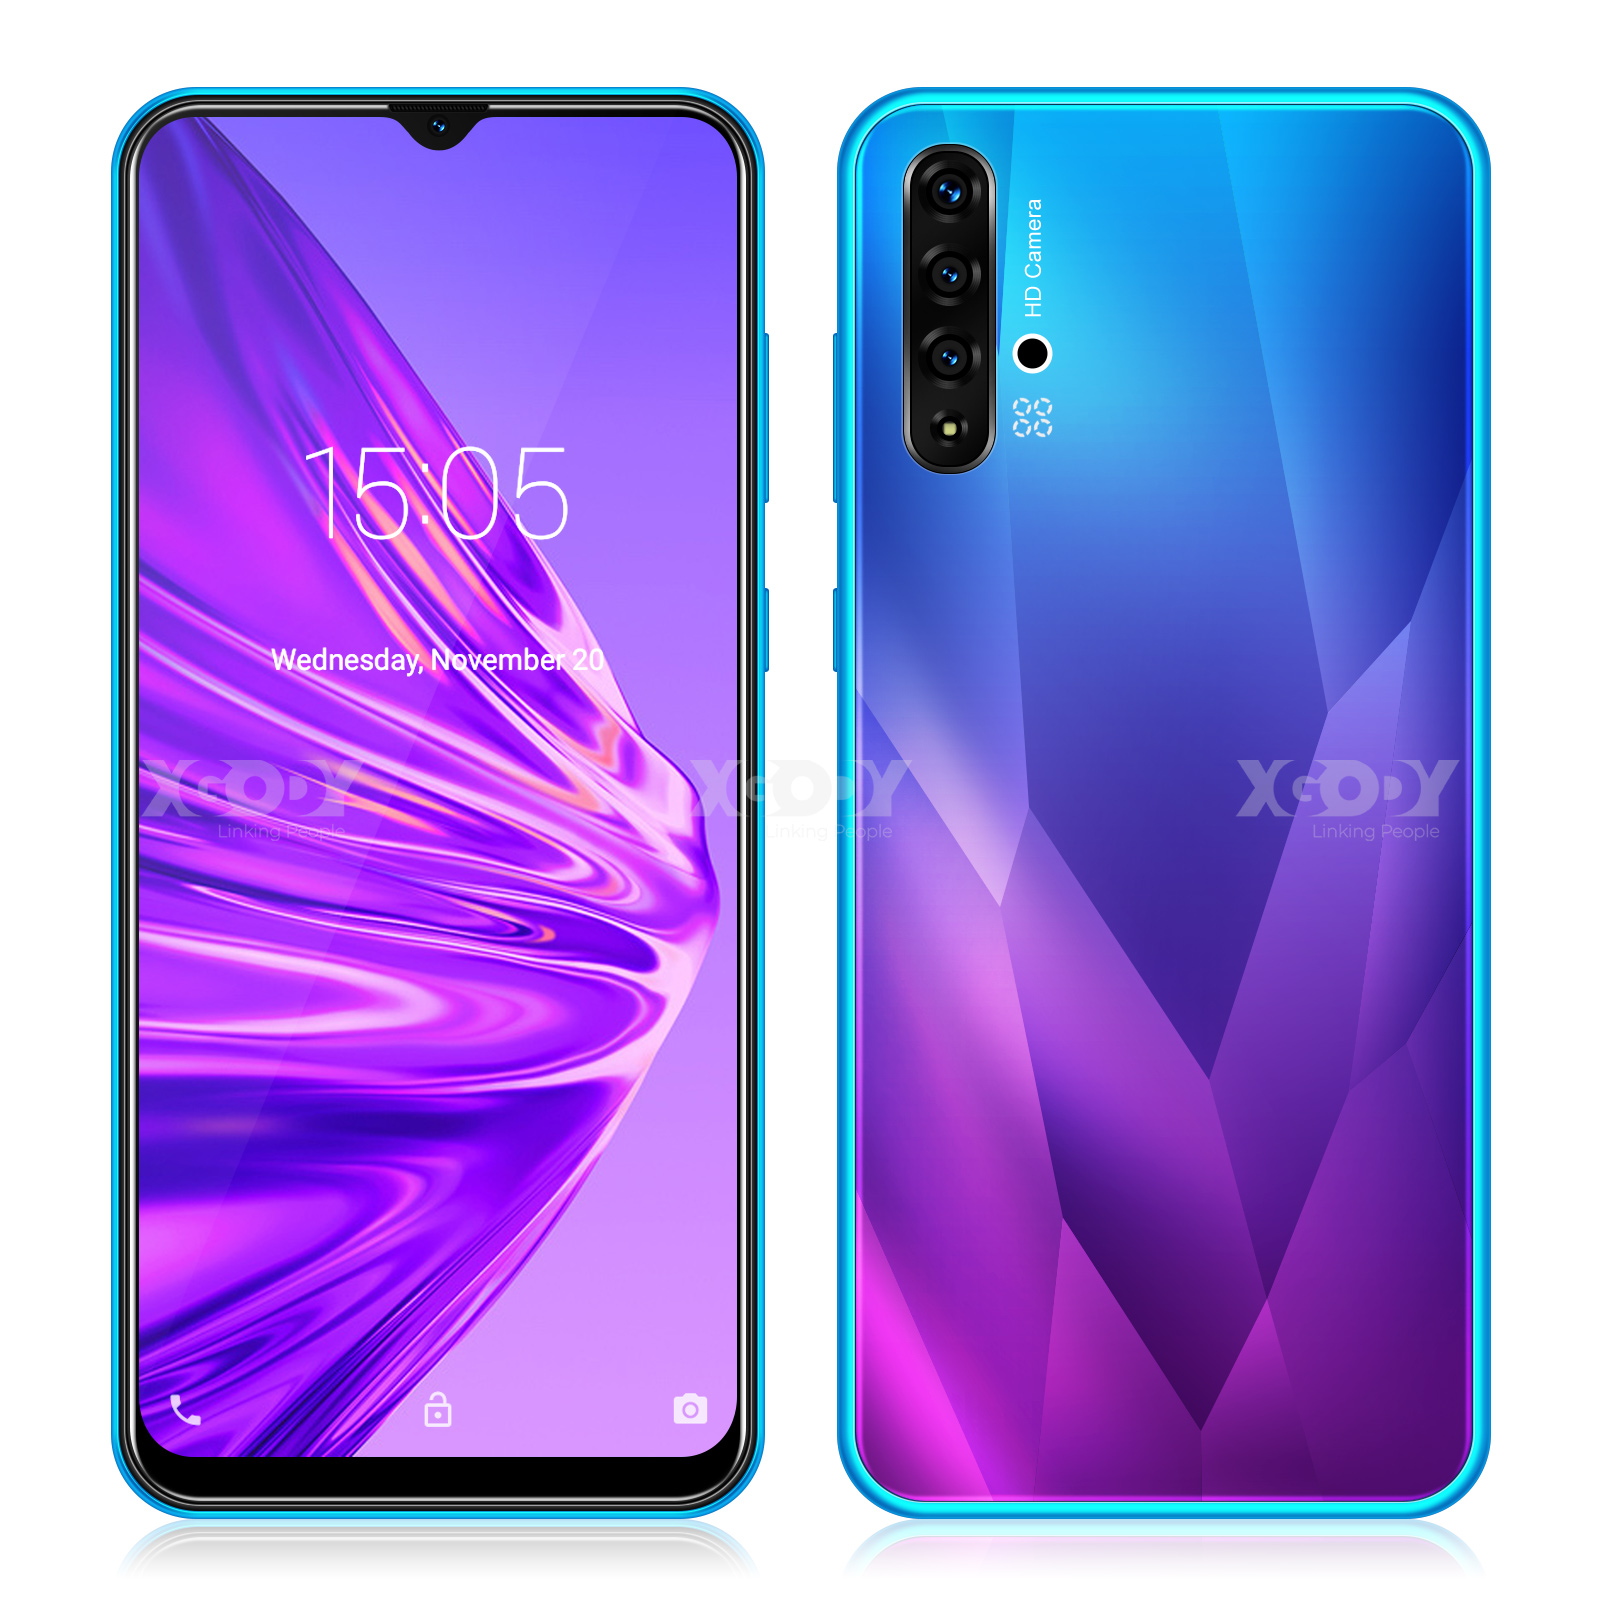 XGODY A50 3G Smartphone 6.5 19:9 Android 9.0 1GB RAM 4GB ROM 5MP Camera Quad Core Dual SIM GPS WiFi Mobile Phone CellPhone image